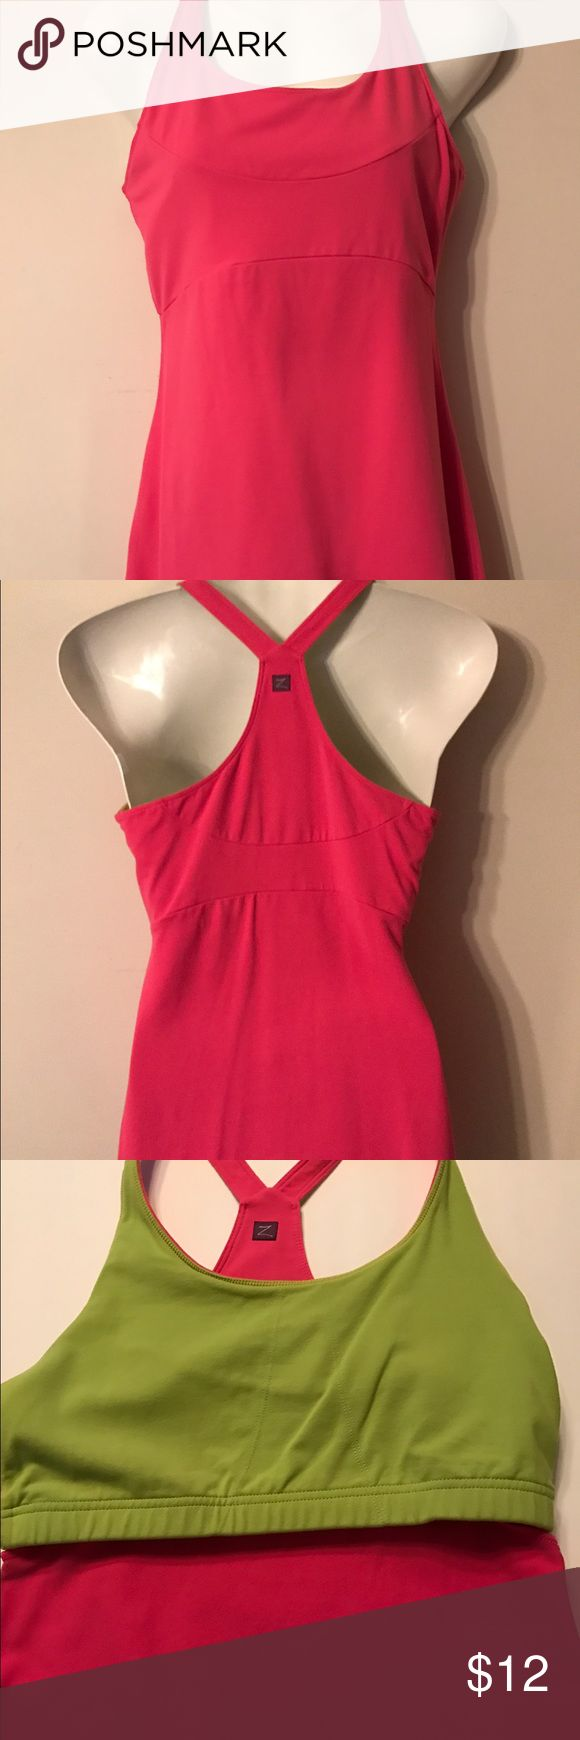 ZOBHA Athletic Dress Zobha Athletic Dress.  Bright pink with lime green interior bra (no pads) as shown in pic 3. Length is approx 30 in. Very good condition. Clean, non-smoking home. All clothes laundered before shipping & same or next day shipping. Thank you for your interest! Logo courtesy of Zobha.com Zobha Dresses